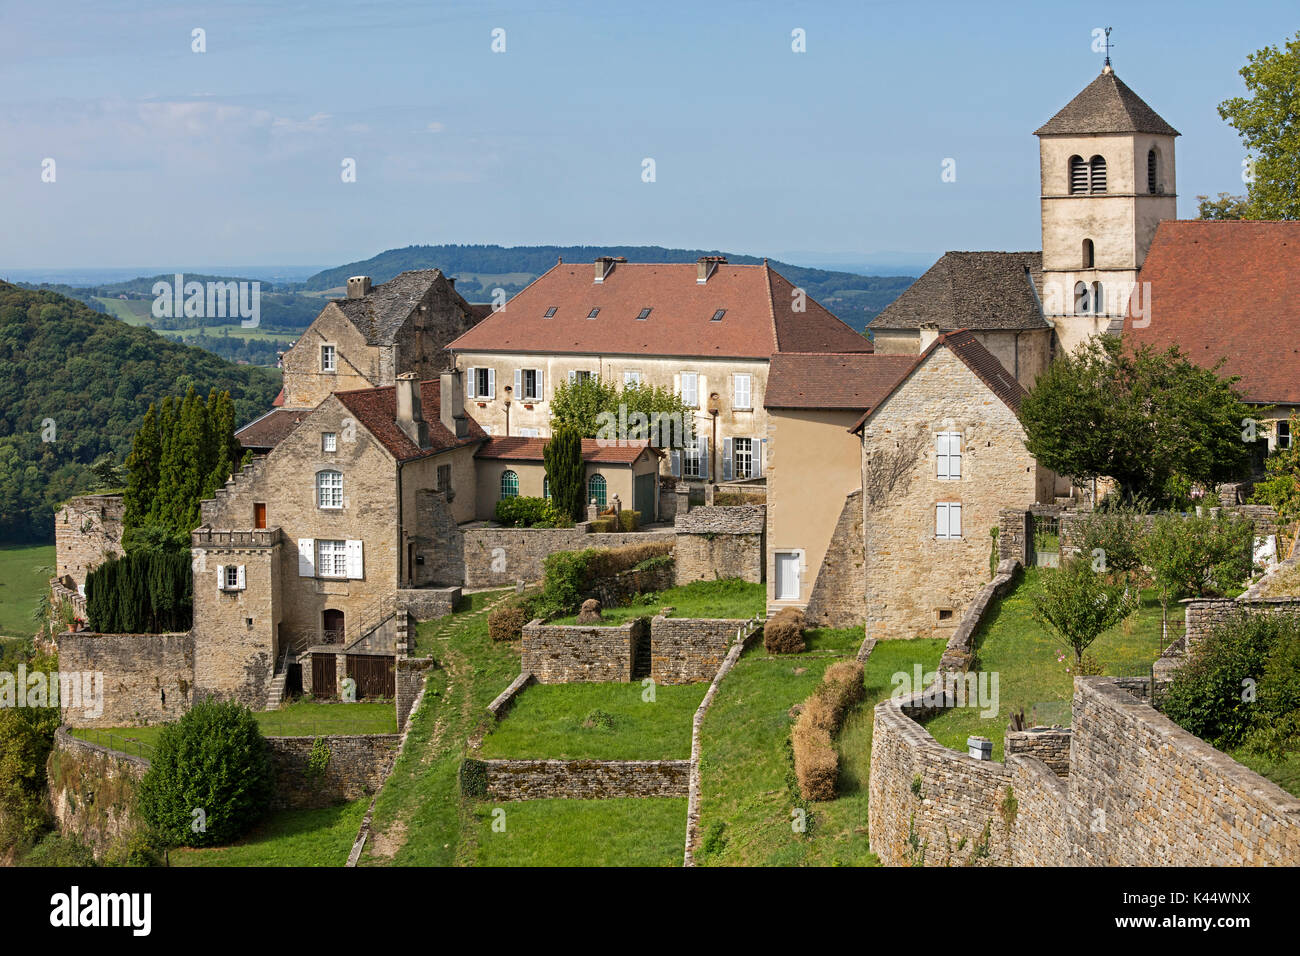 Old houses and the Église Saint-Pierre church at Château-Chalon, commune in the Jura department in Franche-Comté, Lons-le-Saunier, France - Stock Image